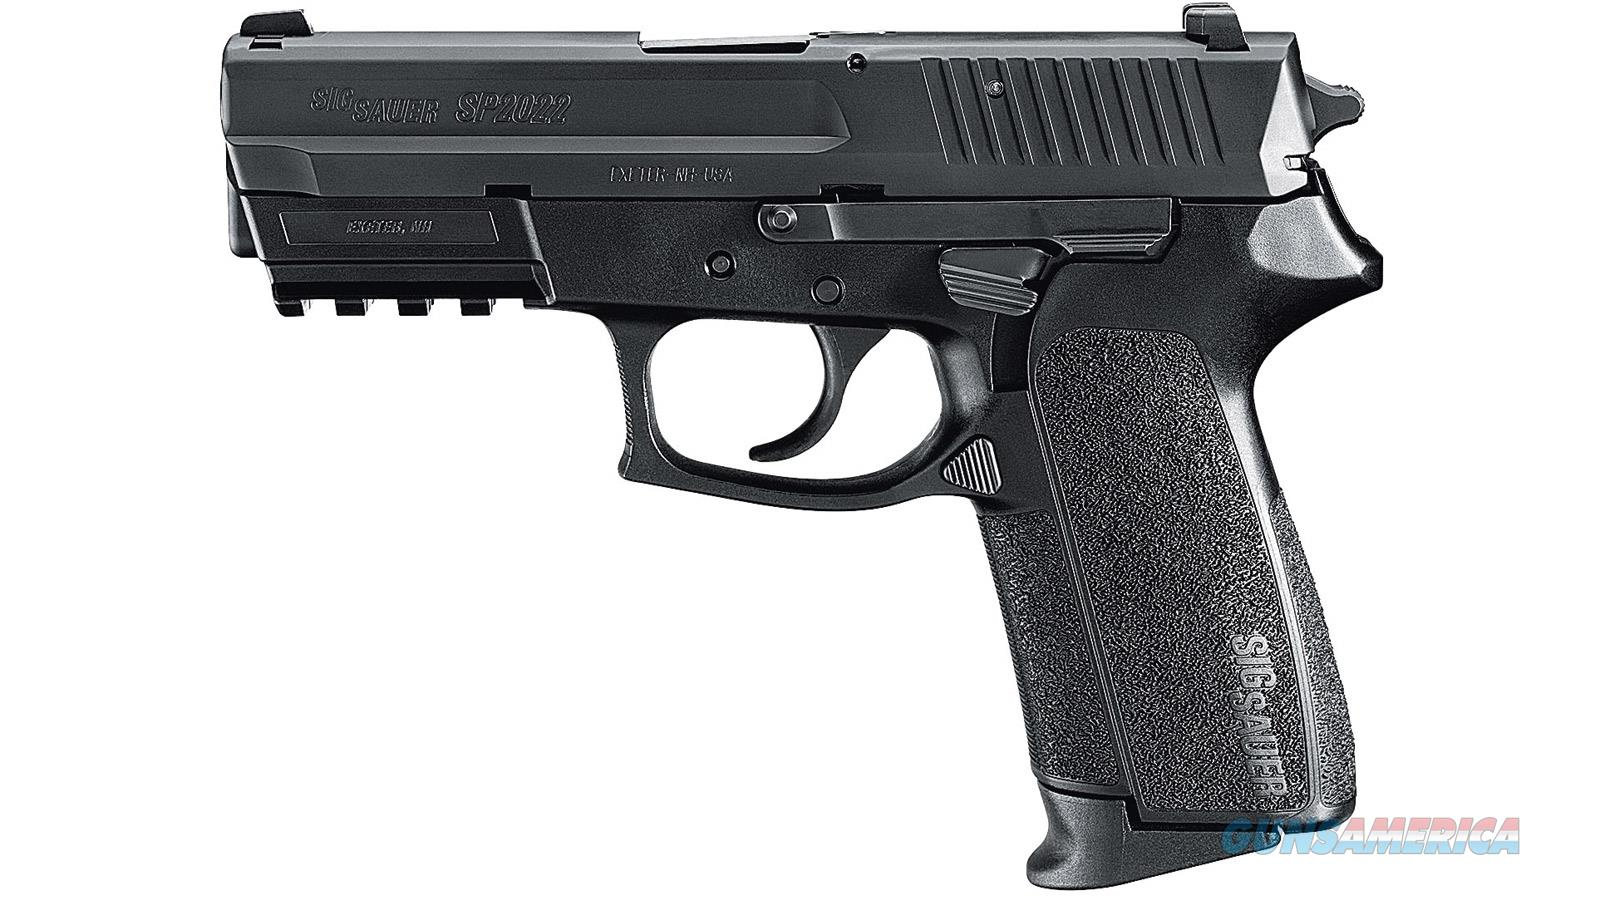 SIG SAUER SP2022 9MM 3.9 BLK DA/SA 10RD MAG MA SP2022M9BSS  Guns > Pistols > Sig - Sauer/Sigarms Pistols > 2022